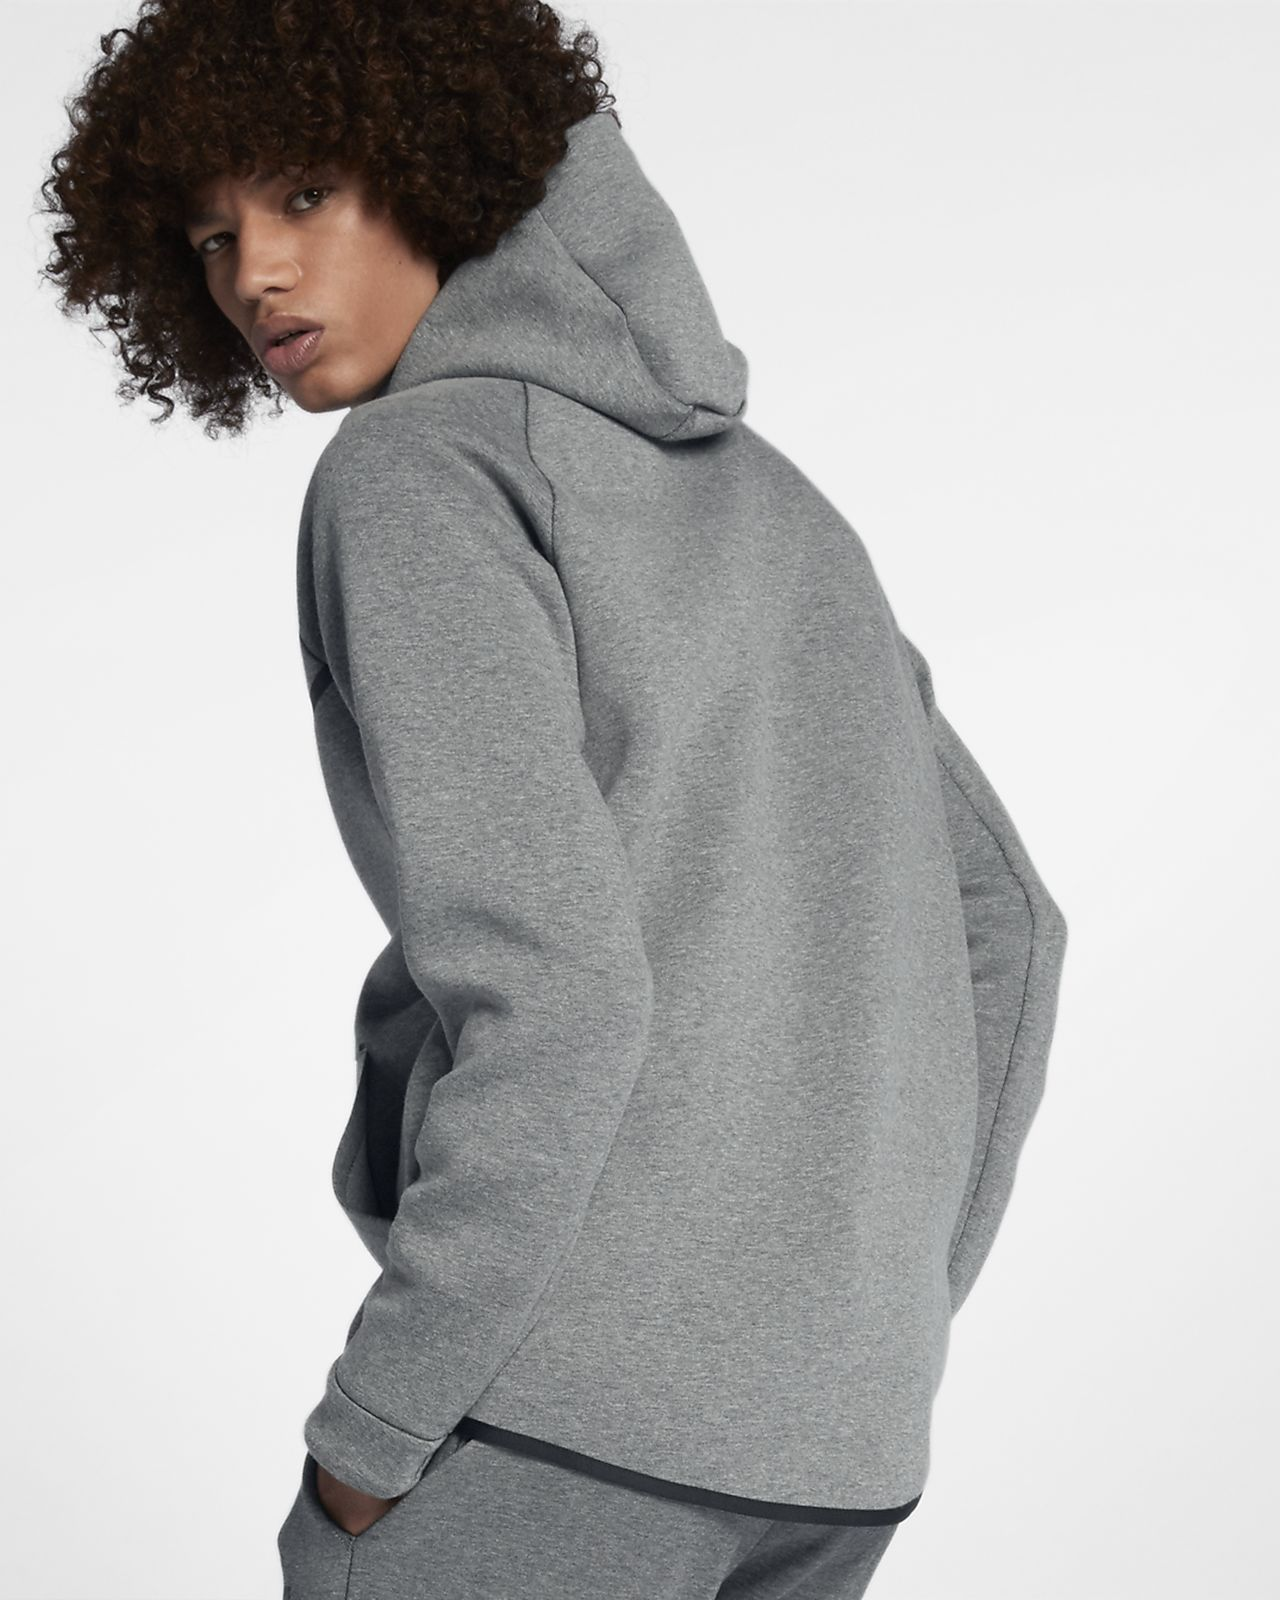 Nike Sportswear Tech Fleece Windrunner Men's Full-Zip Hoodie